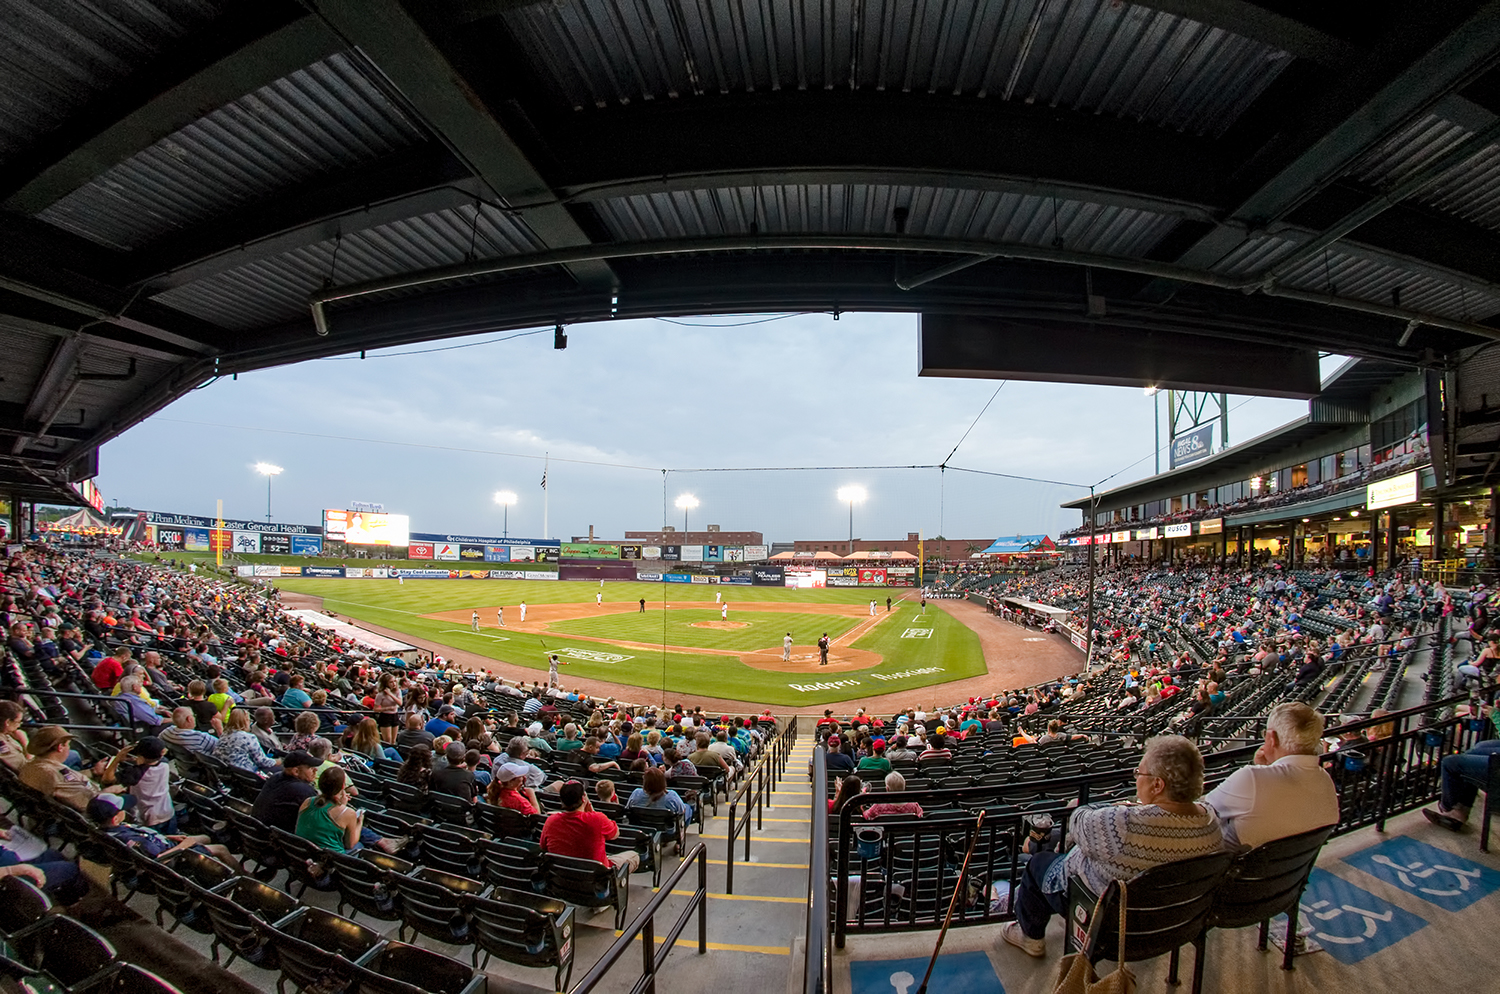 Lancaster Barnstormers - Let us take you out to the ball game and rediscover Lancaster's love of baseball.